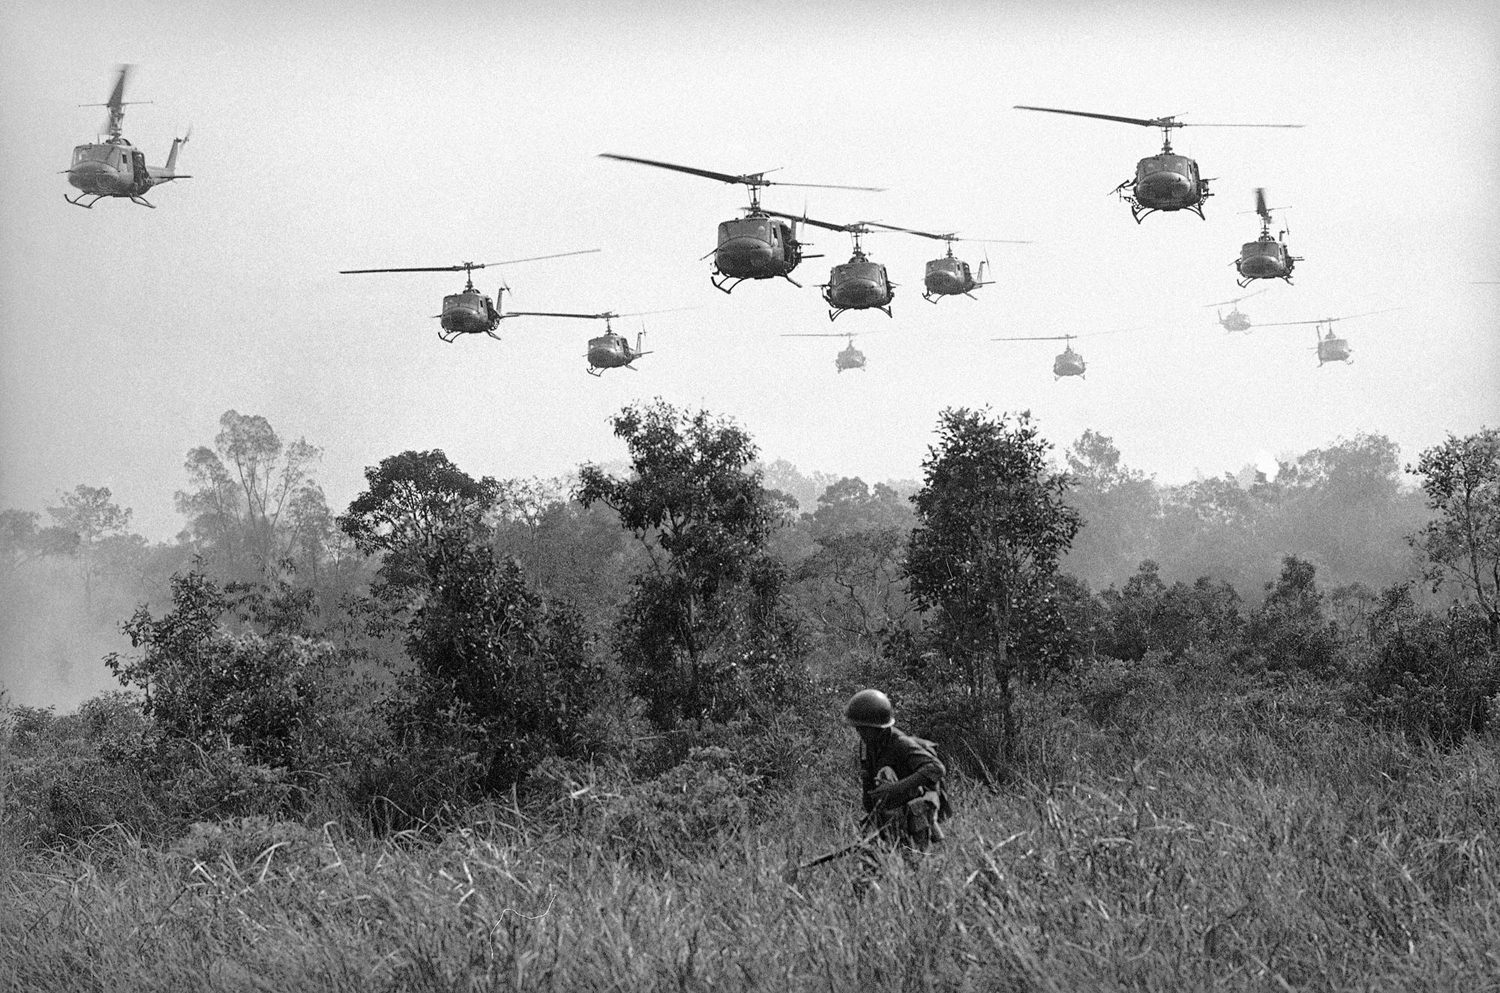 Hovering U.S. Army helicopters pour machine-gun fire into tree lines to cover the advance of Vietnamese ground troops in an attack on a Viet Cong camp 18 miles north of Tay Ninh, Vietnam, on March 29, 1965; Horst Faas